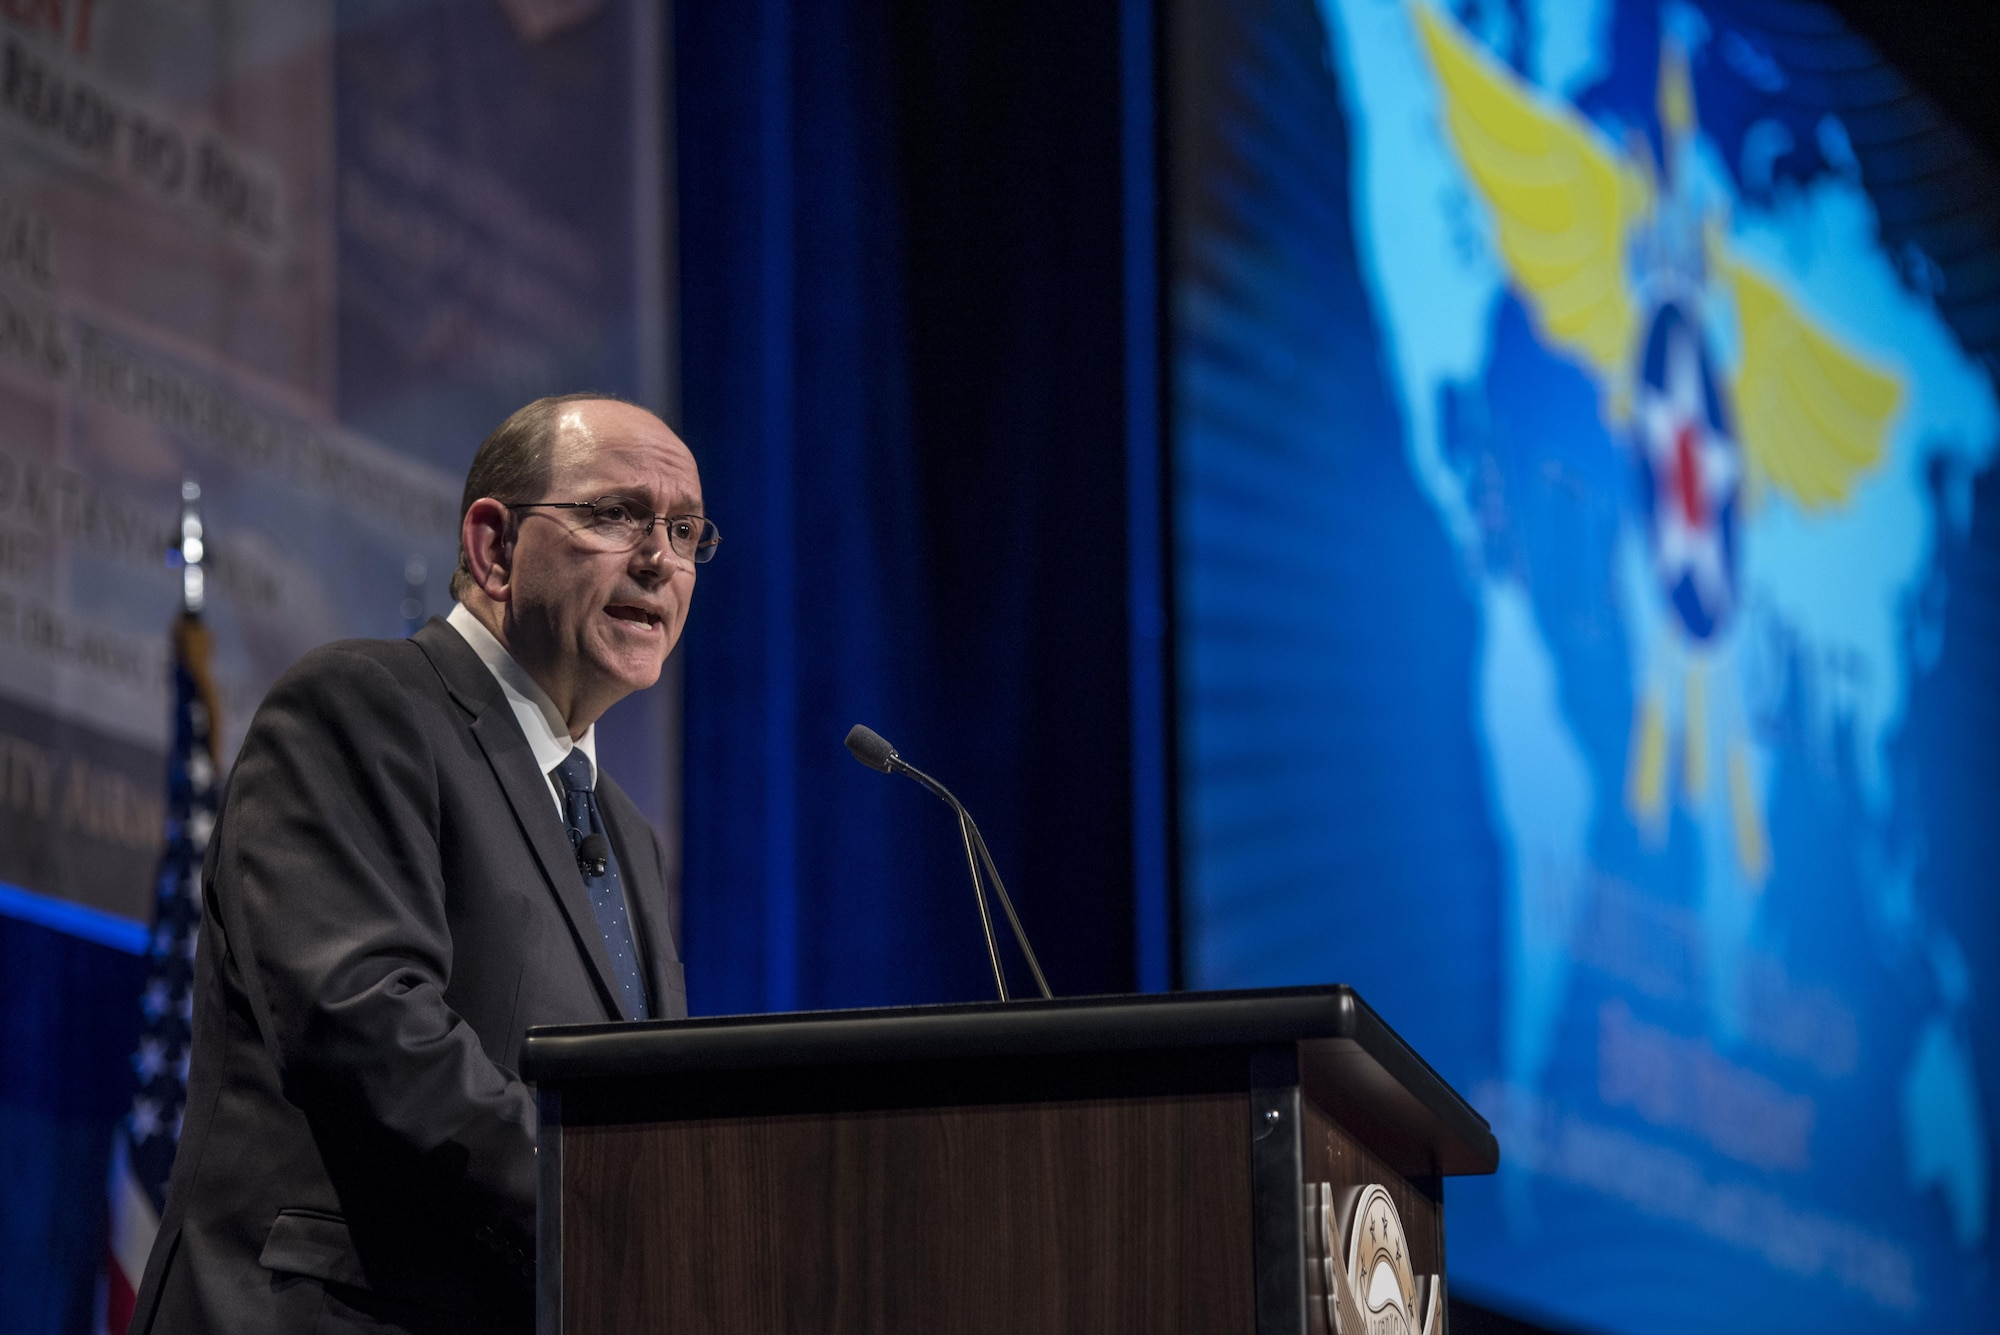 """Under Secretary of the Air Force Matthew Donovan speaks at the Airlift/Tanker Association and Air Mobility Command Symposium in Orlando, Fla., Oct. 26, 2017. This year's conference theme, """"Mobility Airmen: Agile, Innovative and Ready to Roll,"""" provides Air Force leadership, industry experts, and academia an opportunity to work together with current and former Mobility Airmen from around the world to discuss issues and challenges facing America and the Air Mobility community. A/TA provides leadership the opportunity to better understand the impact that more than 124,000 Total Force Mobility Airmen have on the global mobility mission. (U.S. Air Force photo by Tech. Sgt. Jodi Martinez)"""